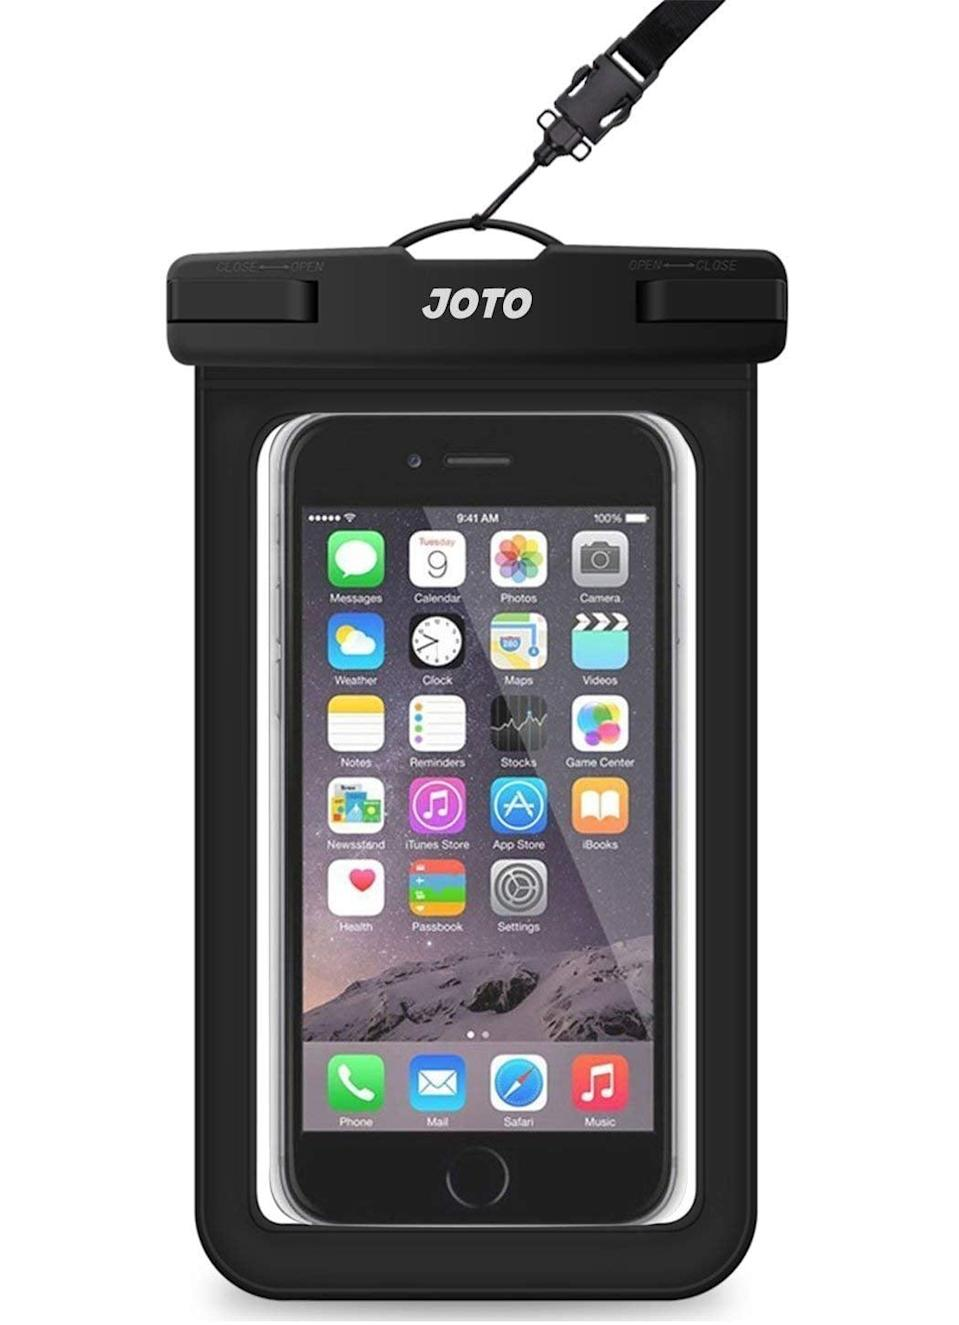 """<p>If they're going on an outdoor adventure, this <a href=""""https://www.popsugar.com/buy/Joto-Universal-Waterproof-Cellphone-Pouch-376792?p_name=Joto%20Universal%20Waterproof%20Cellphone%20Pouch&retailer=amazon.com&pid=376792&price=6&evar1=geek%3Aus&evar9=42811495&evar98=https%3A%2F%2Fwww.popsugar.com%2Fnews%2Fphoto-gallery%2F42811495%2Fimage%2F46721301%2FJoto-Universal-Waterproof-Cellphone-Pouch&list1=gifts%2Cgift%20guide%2Cgifts%20for%20men%2Cgifts%20under%20%24100%2Cgifts%20under%20%2450%2Cgifts%20under%20%2475&prop13=api&pdata=1"""" class=""""link rapid-noclick-resp"""" rel=""""nofollow noopener"""" target=""""_blank"""" data-ylk=""""slk:Joto Universal Waterproof Cellphone Pouch"""">Joto Universal Waterproof Cellphone Pouch</a> ($6) will come in handy. </p>"""